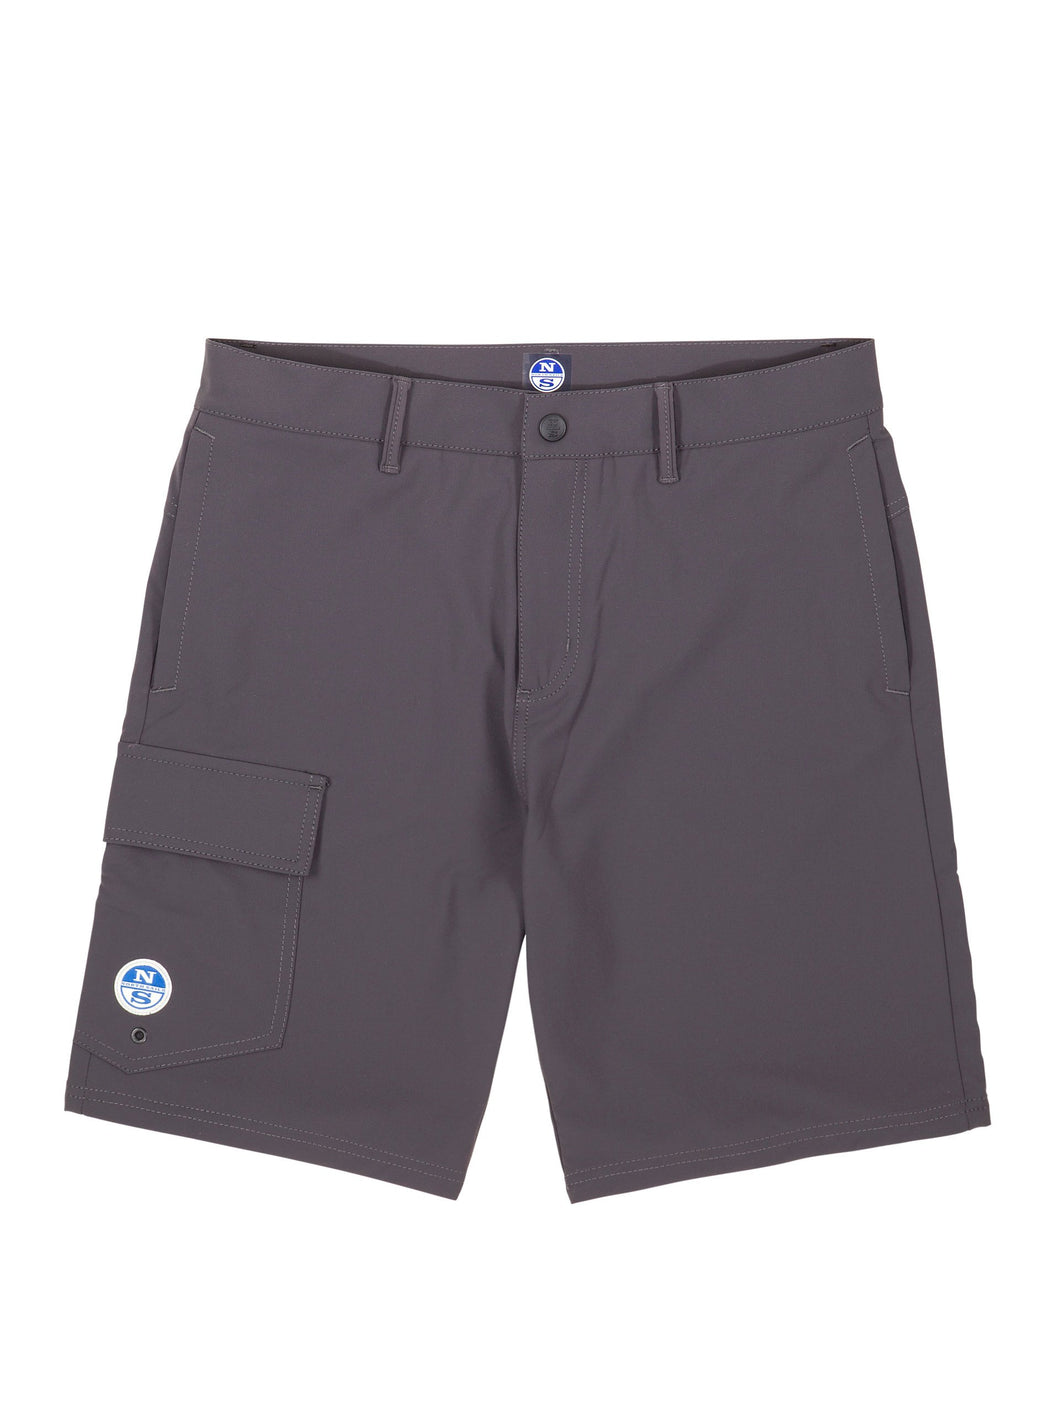 North Sails Mens Stretch Short